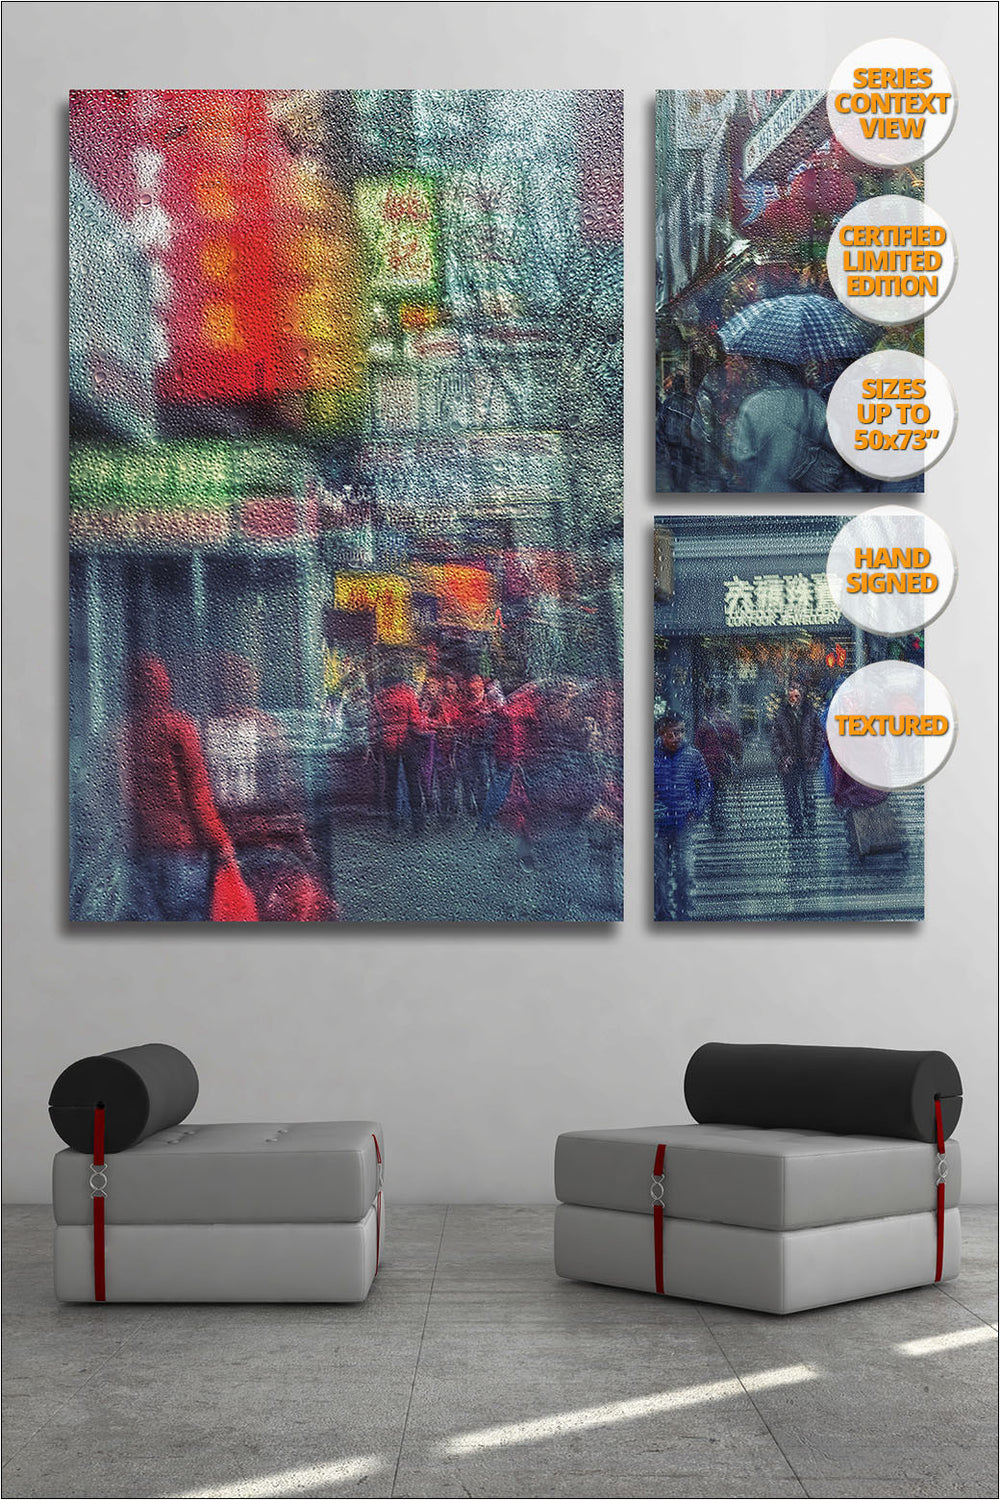 Rain in Chinatown, New York. [3/3] | New York Through the Rain Series. | Giant Print hanged in reading room.